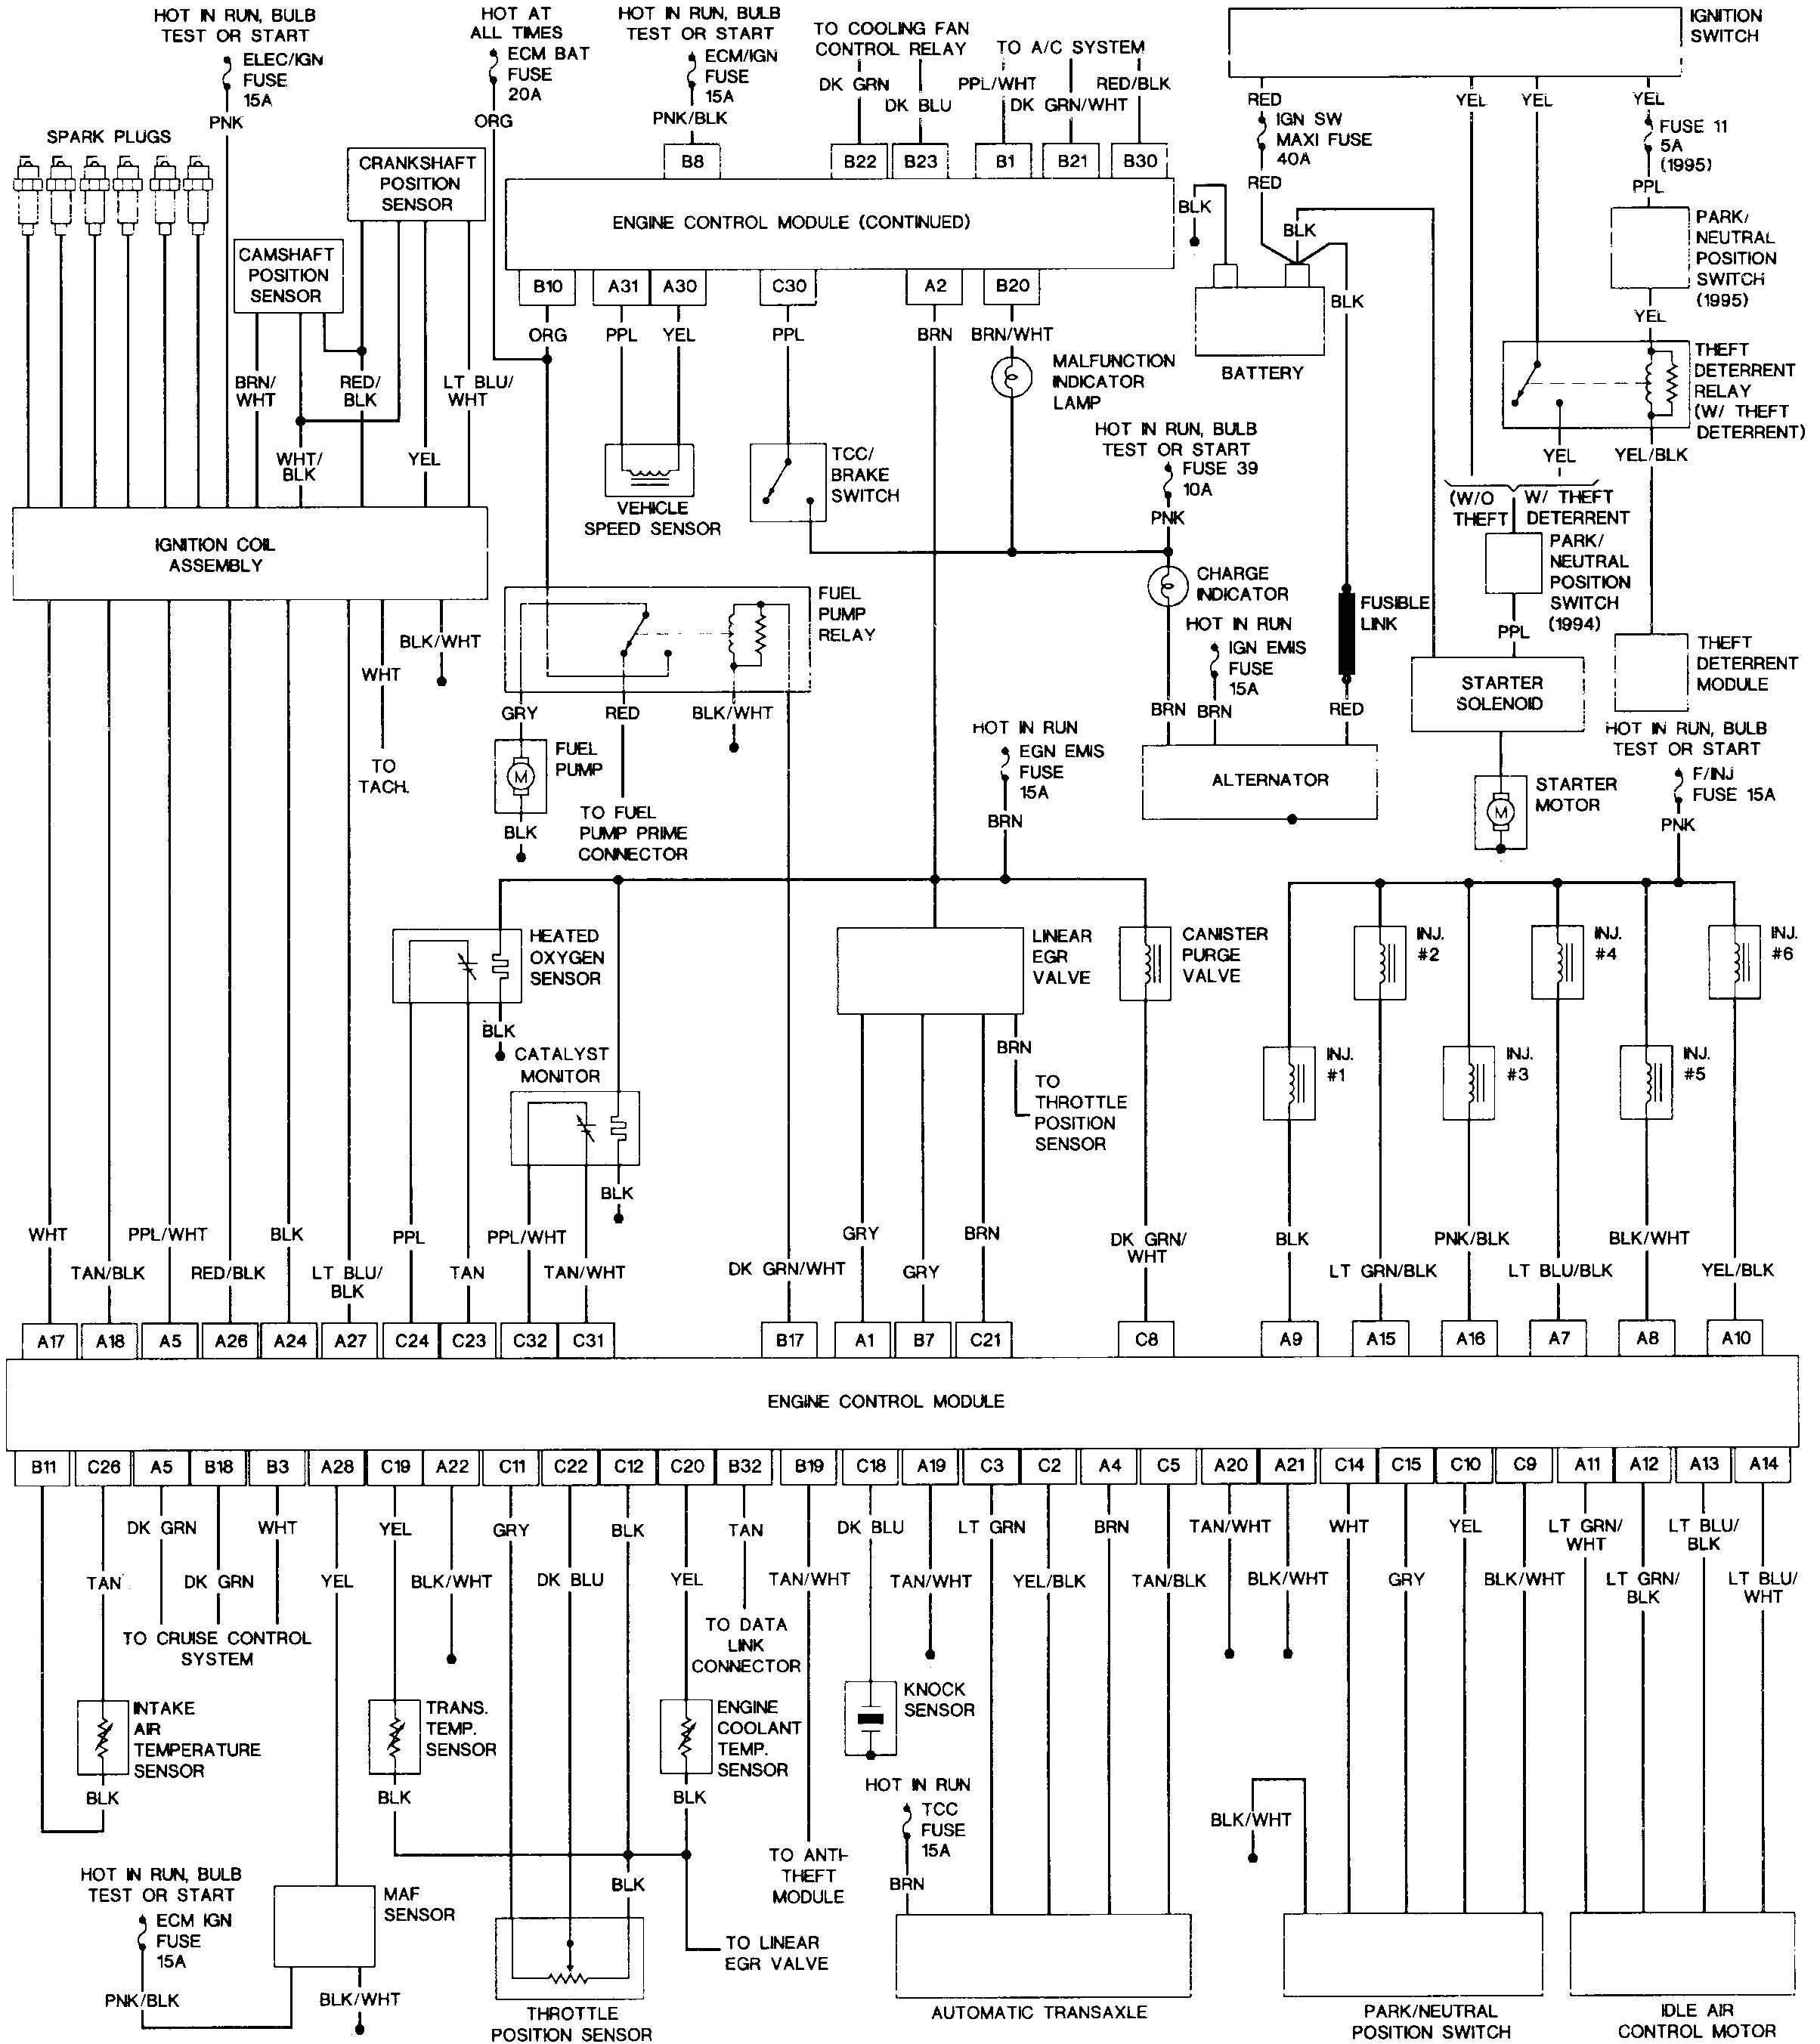 Buick Rendezvous Radio Wiring Diagram